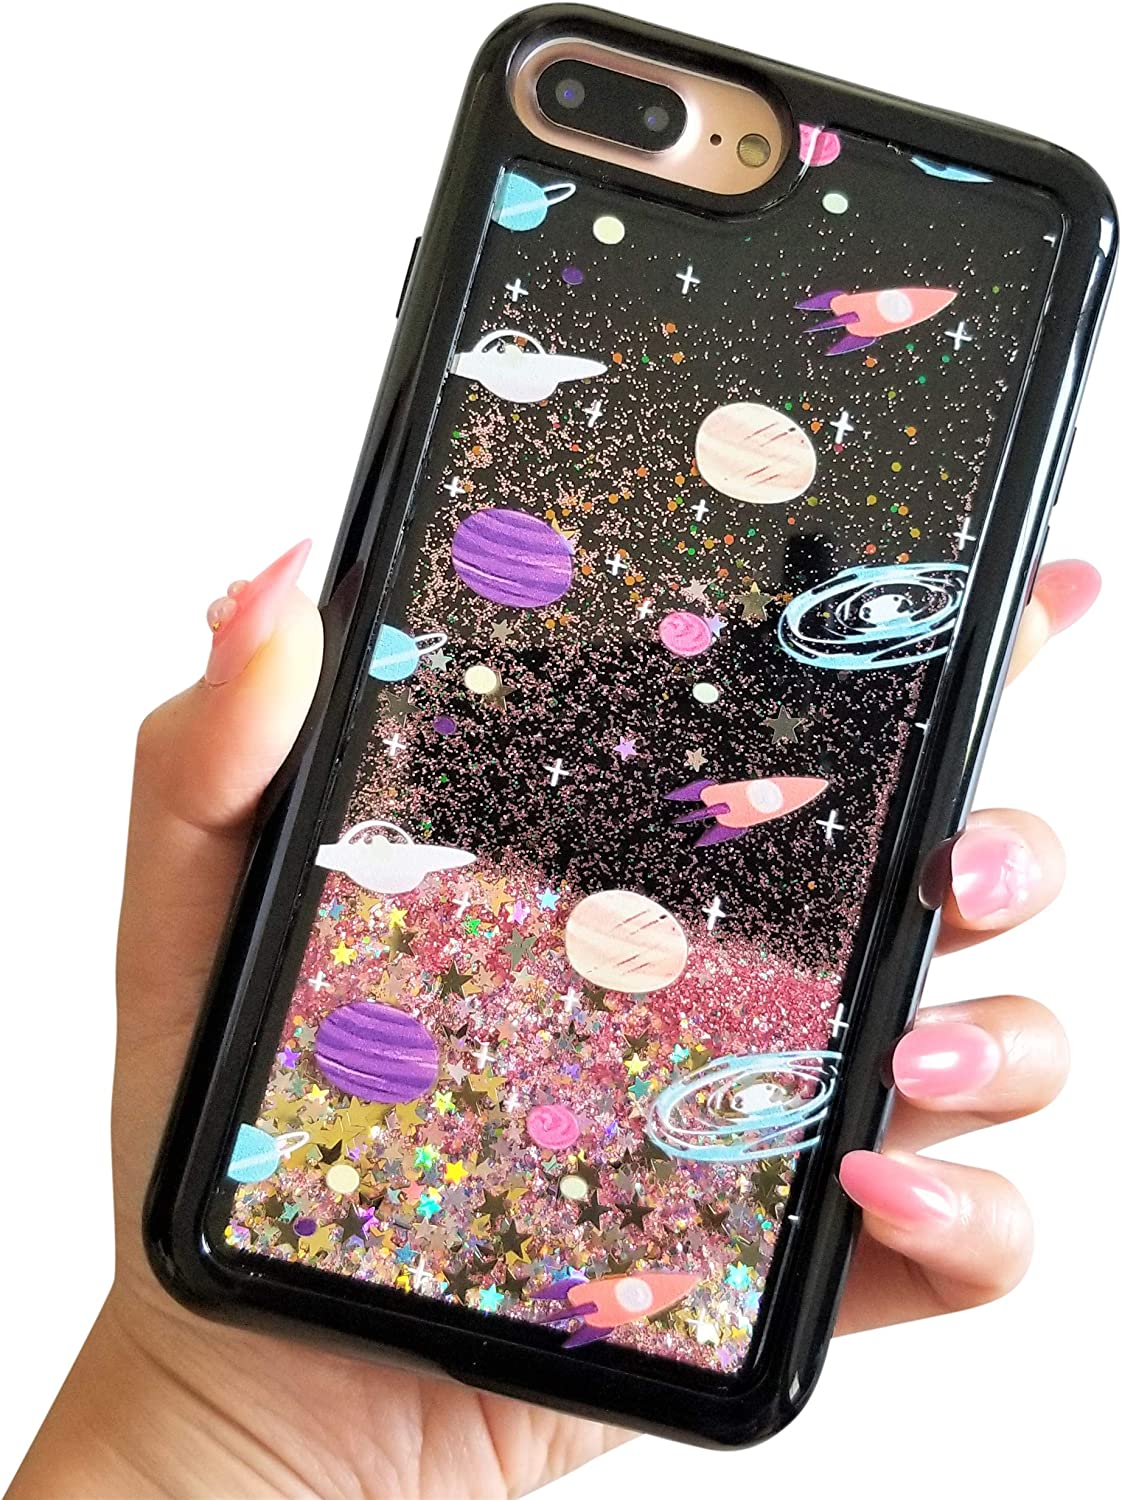 "for iPhone 7 Plus 5.5"" for iPhone 8 Plus 5.5"" Cute Black Floating Moon Stars Outer Space Liquid Waterfall Bling Glitter Soft Case (Black)"